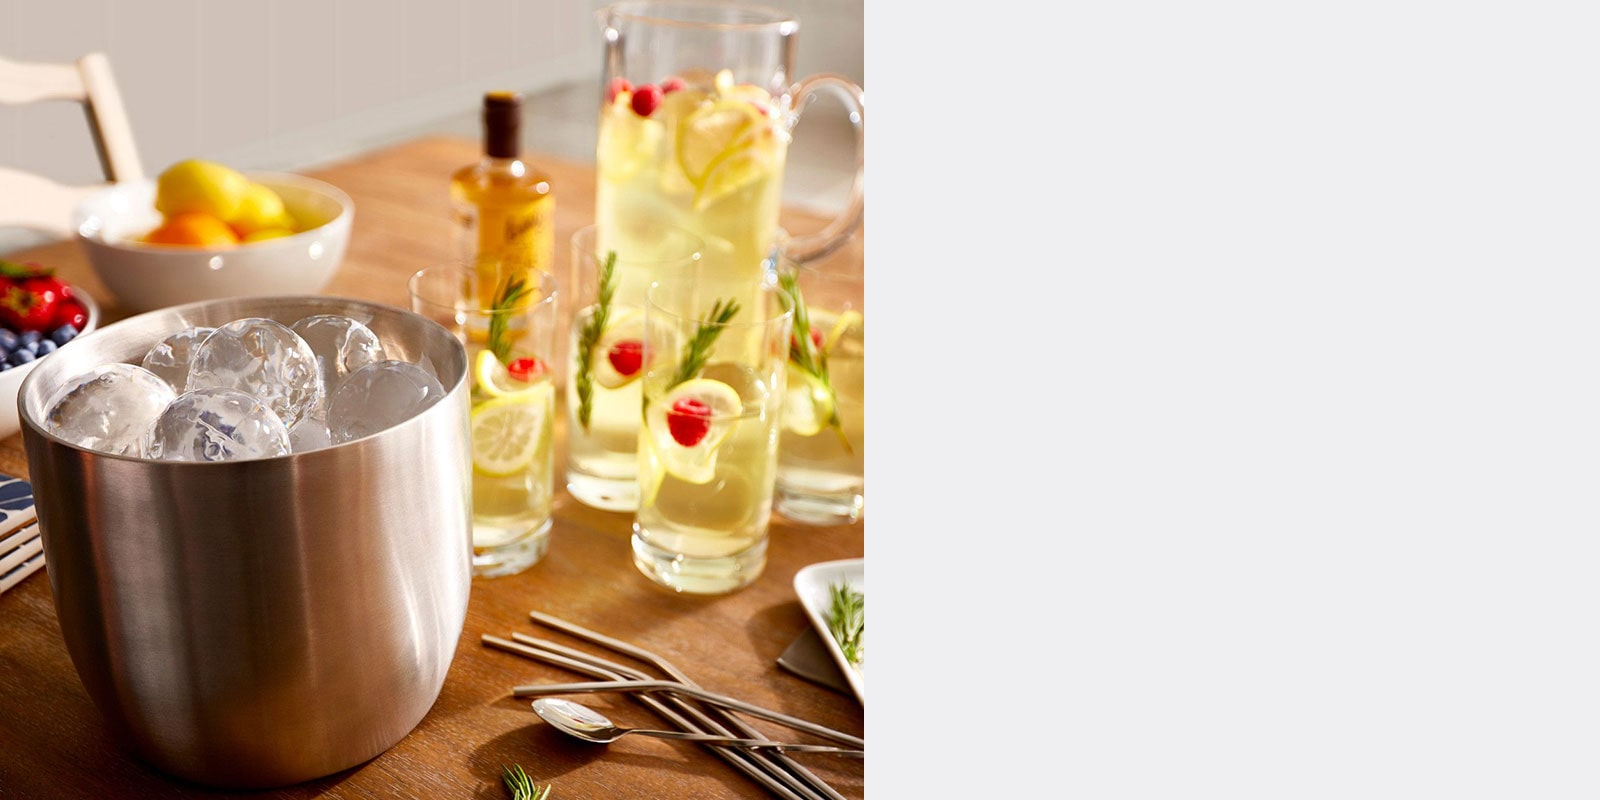 Styled Craft Ice in a bucket next to a lemonade pitcher and glasses